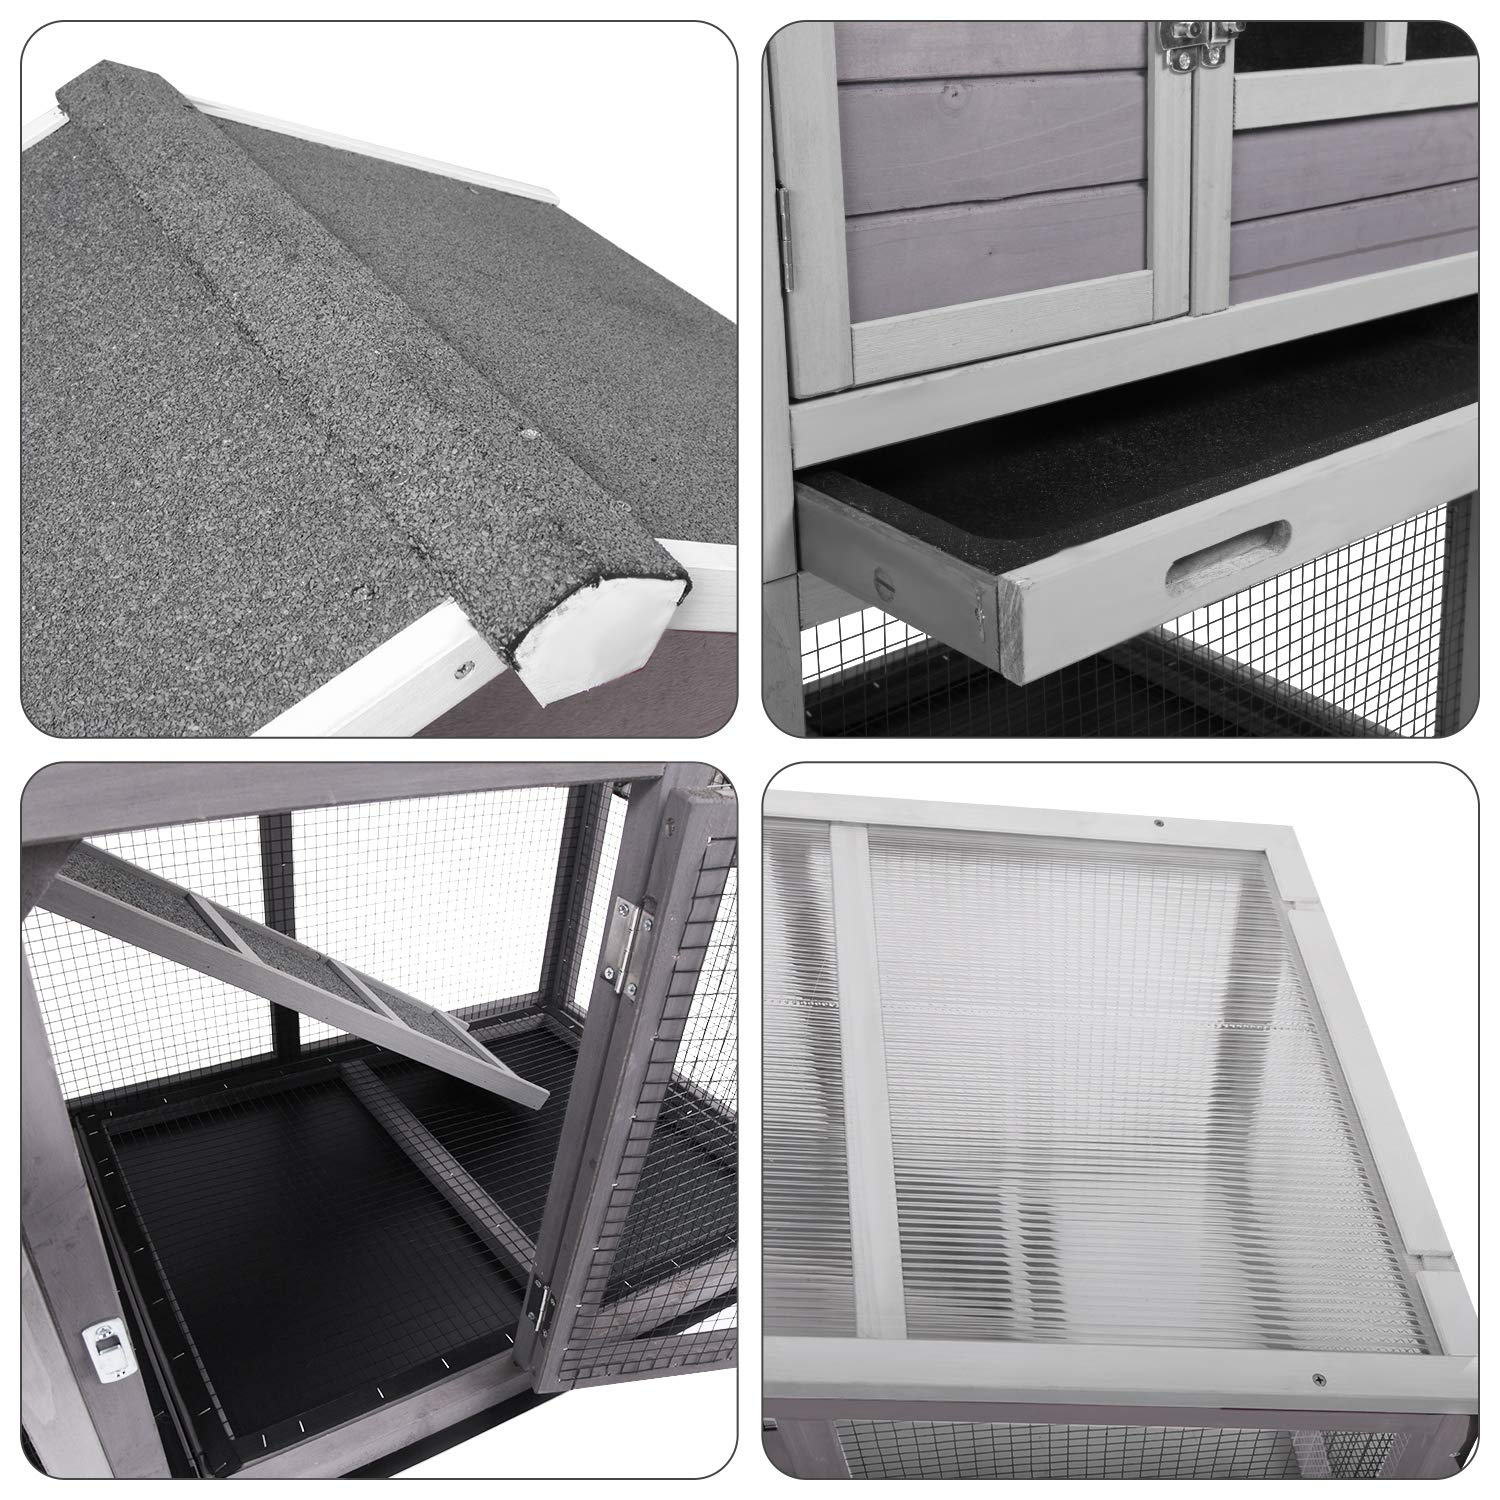 Aivituvin Chicken Coop Indoor and Outdoor,Rabbit Hutch with Removable Bottom Wire Mesh & PVC Layer,Deeper No LeakageTray,Wooden Hen House with Nesting Box,UV Panel by Aivituvin (Image #3)